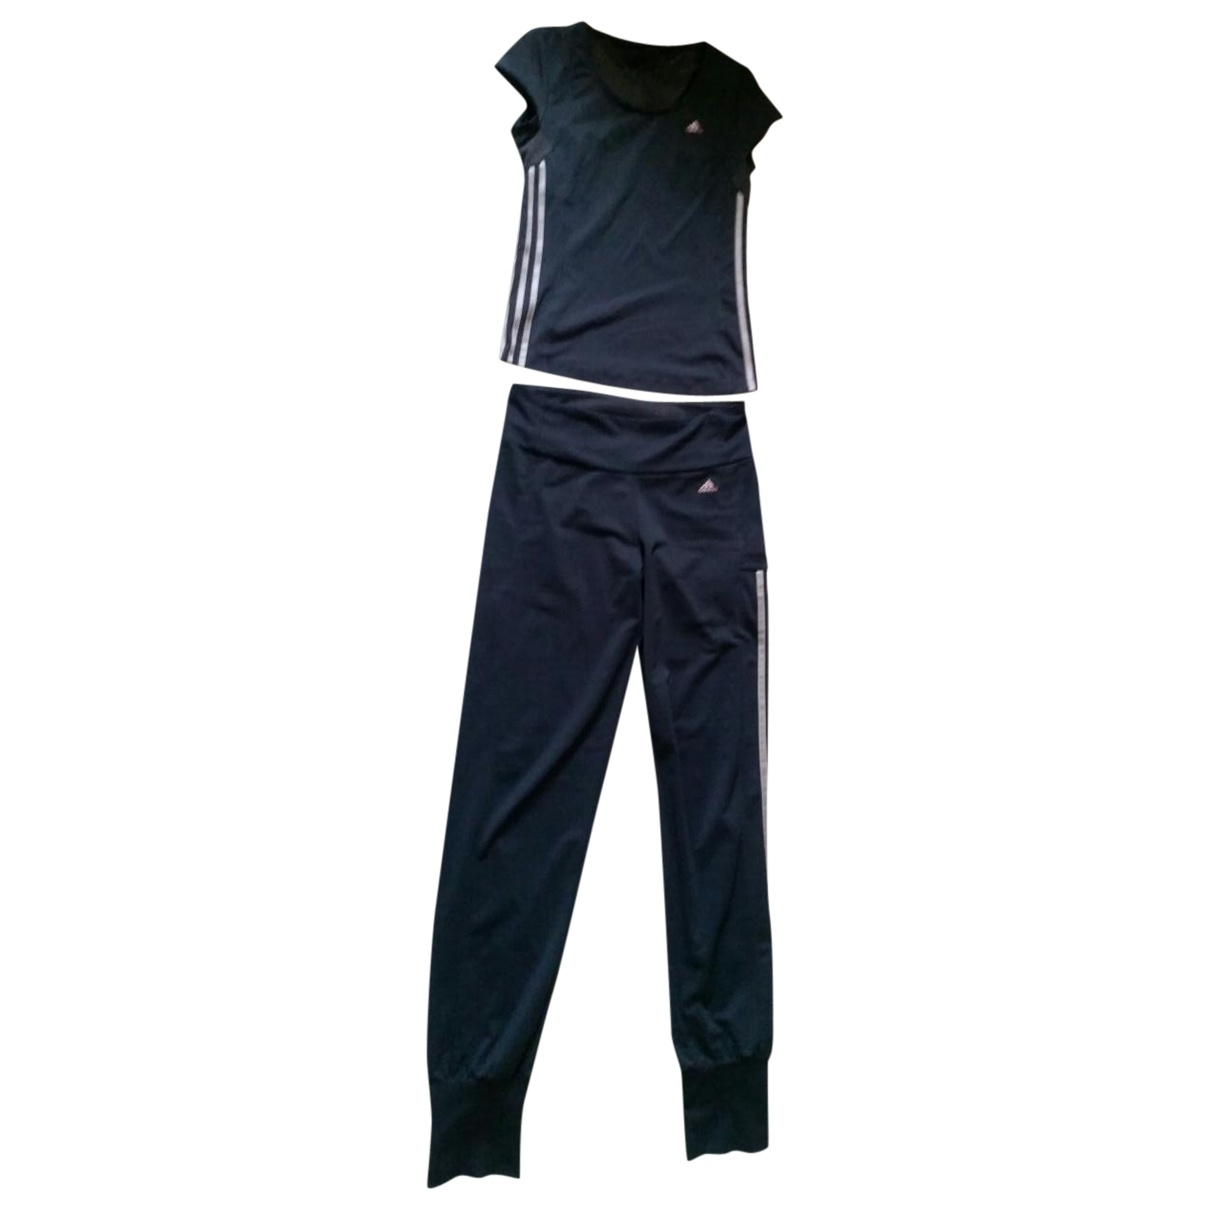 Adidas \N Anthracite  top for Women 44 IT